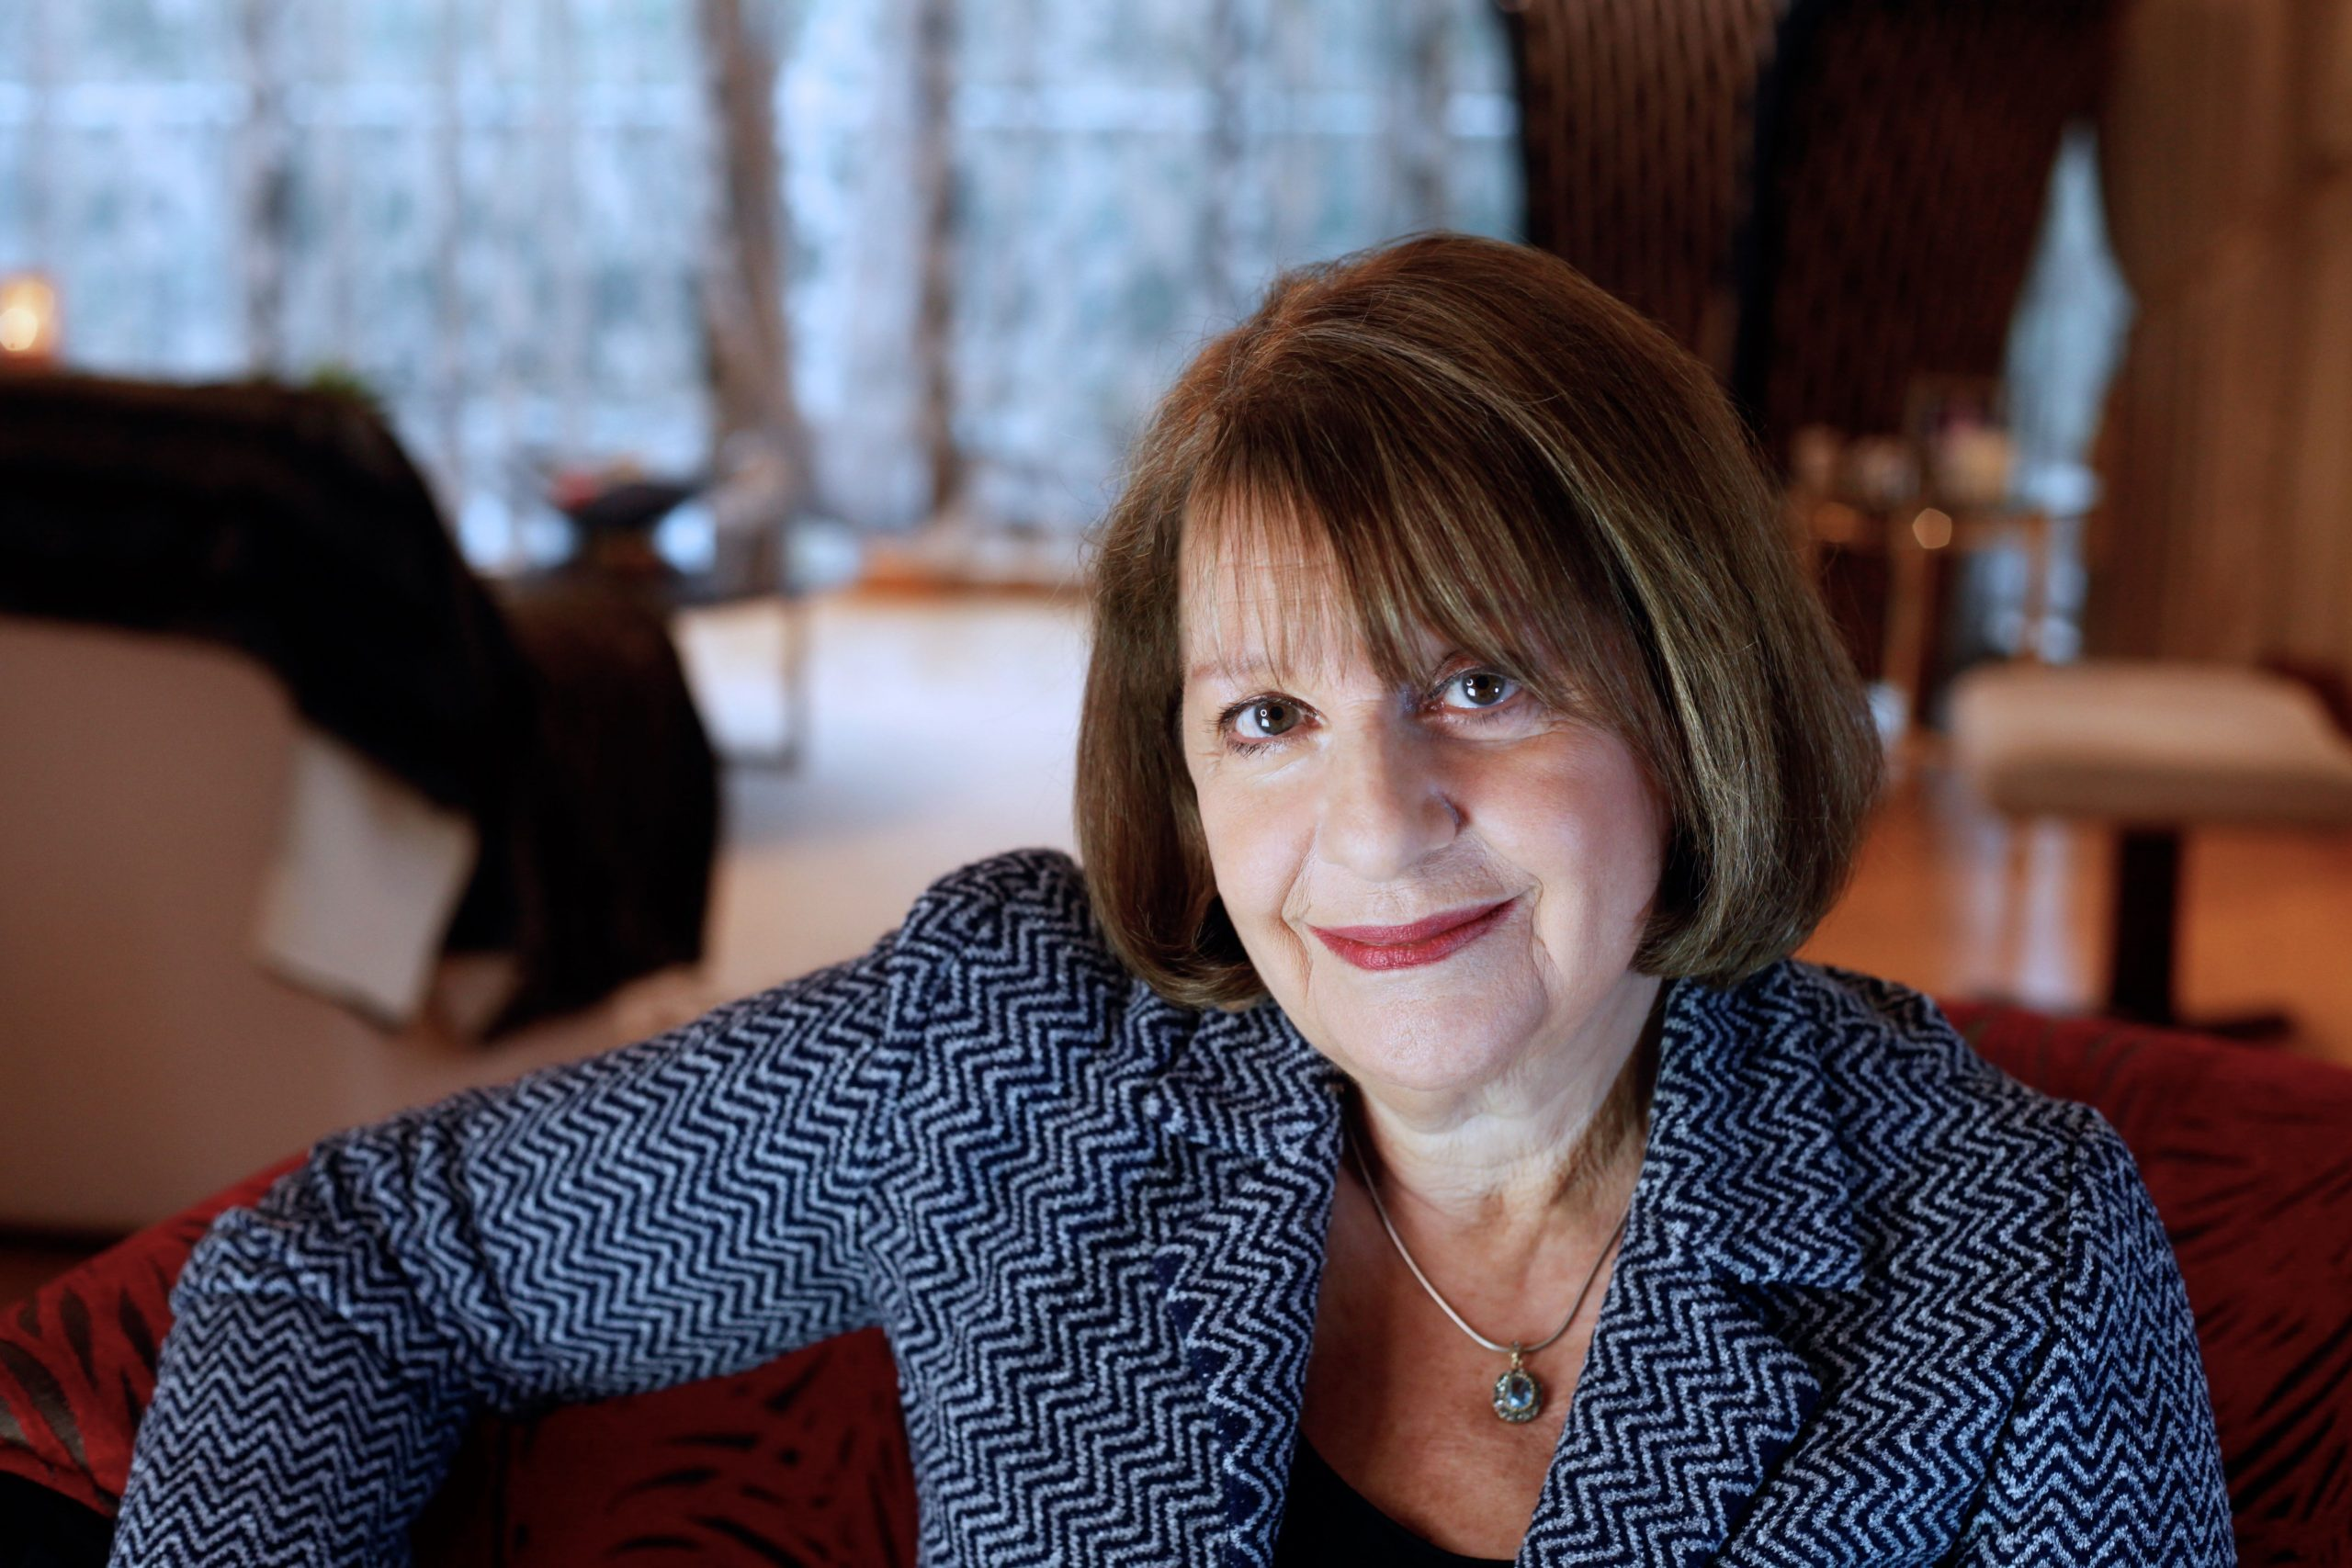 Ahead of her Time with Entrepreneur Judy Piatkus